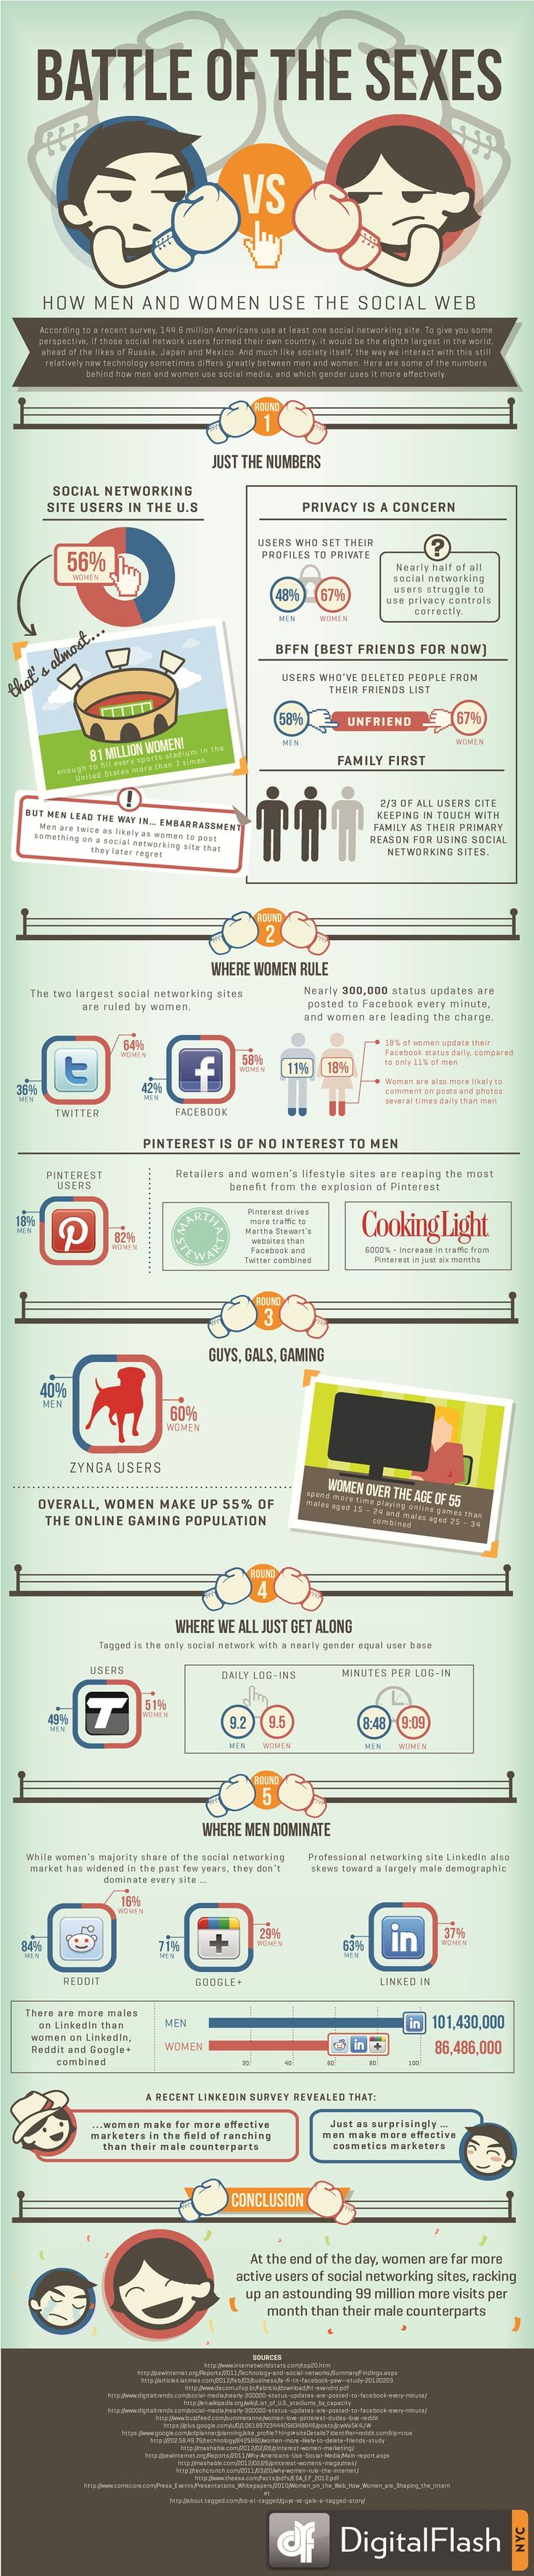 how men and women use the social web